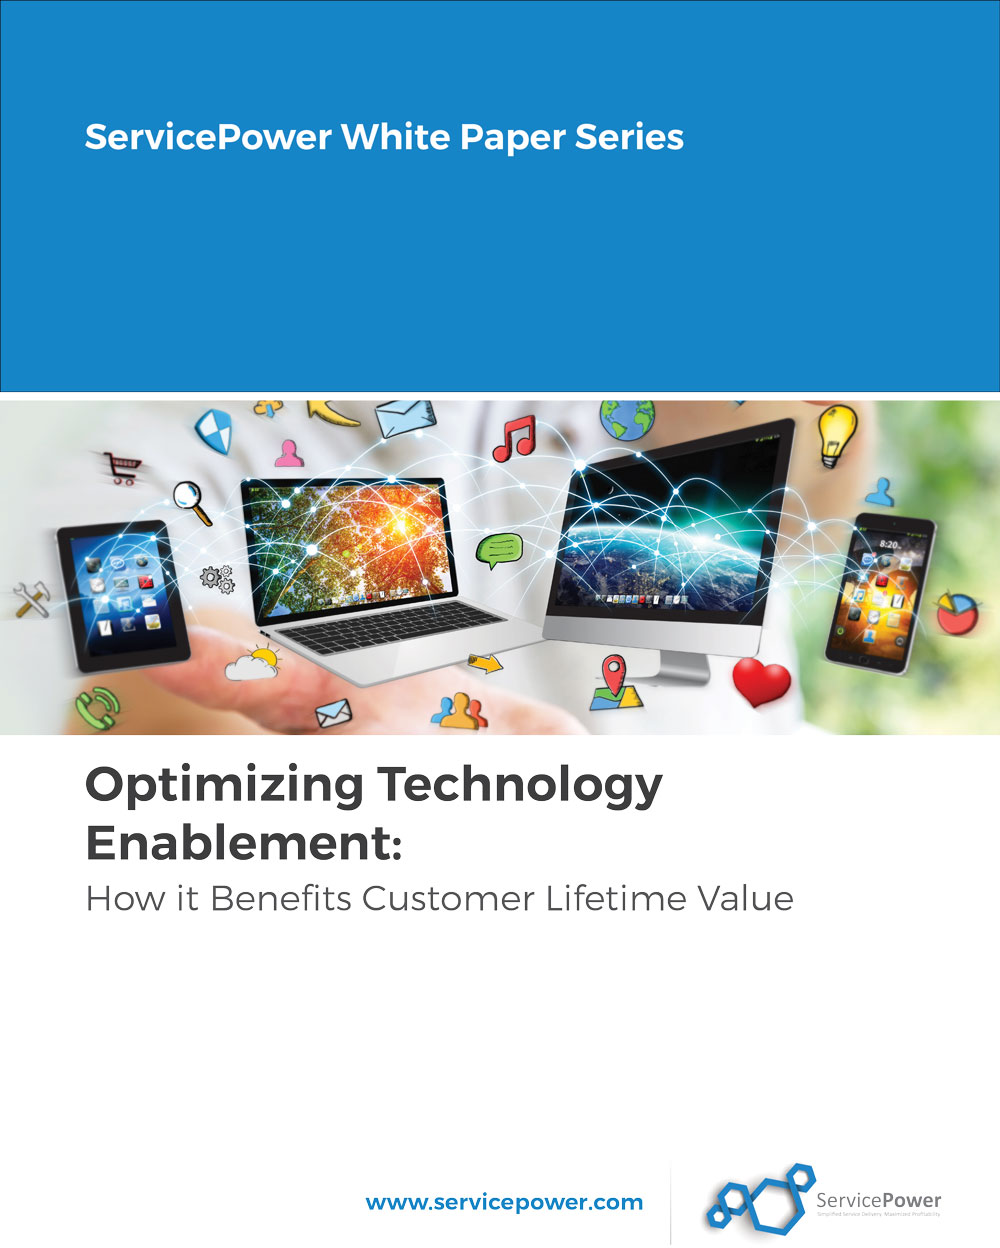 Free Whitepaper - Optimizing Technology Enablement: How it Benefits Customer Lifetime Value